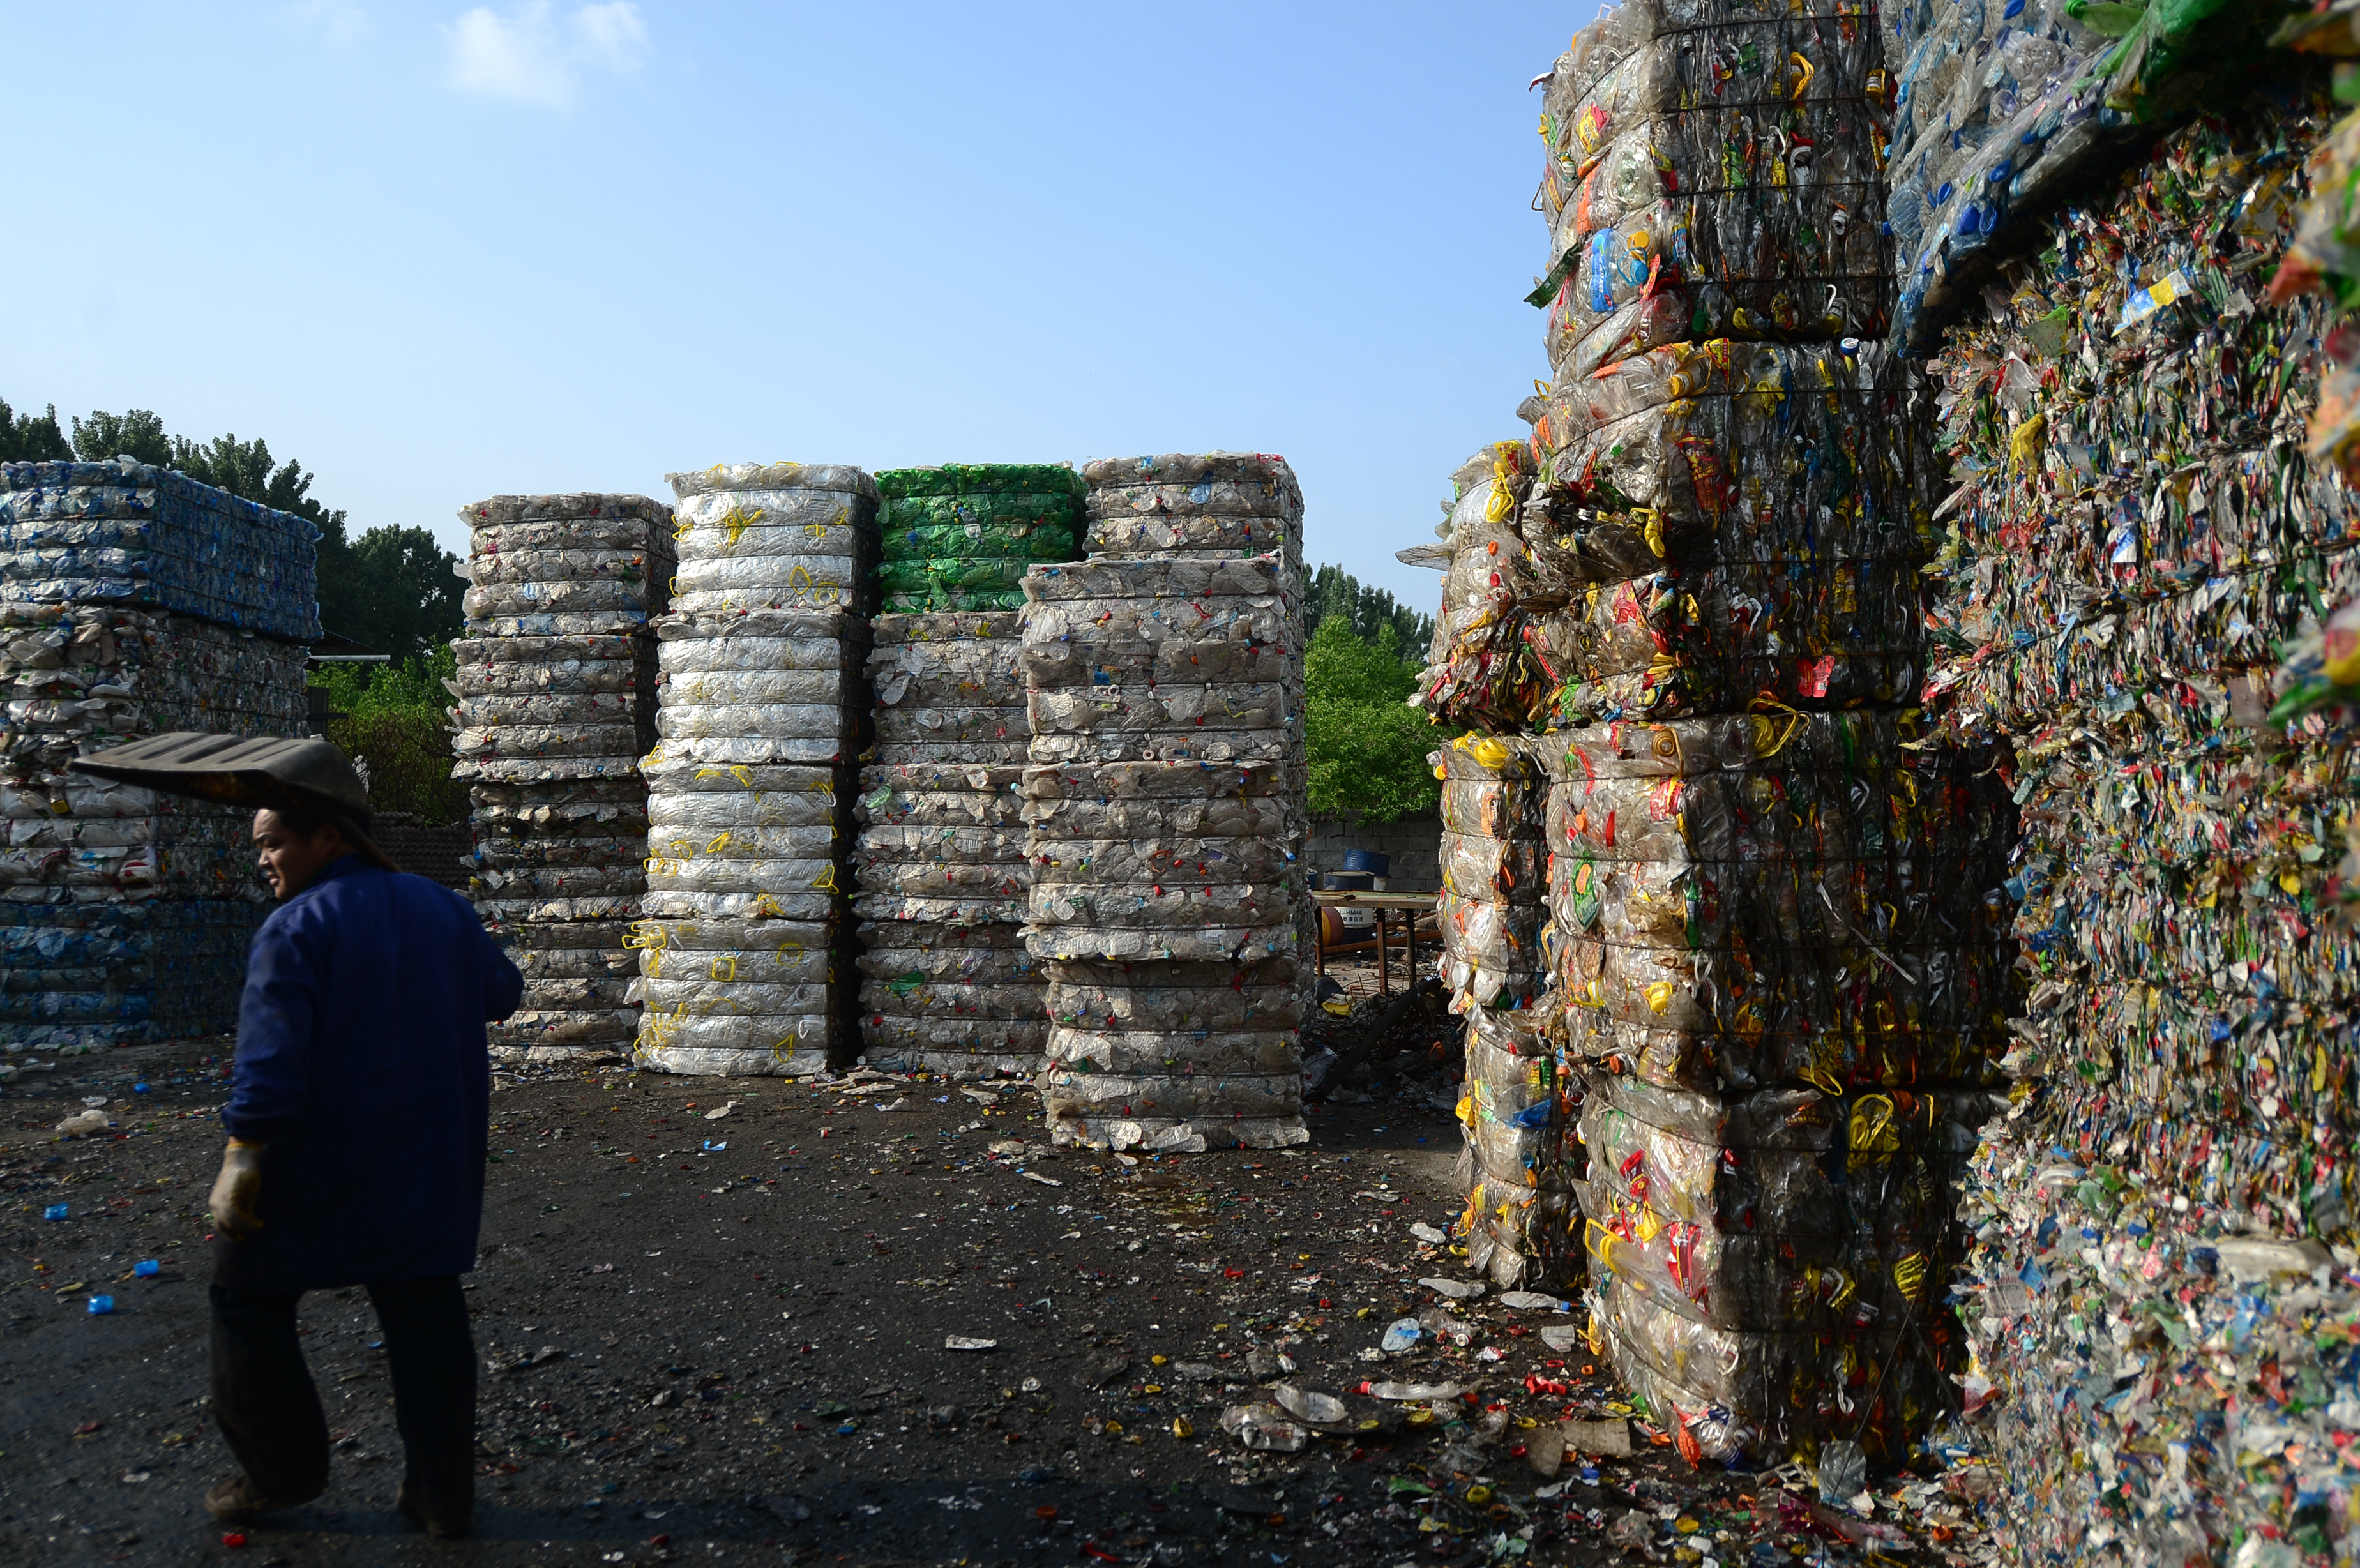 A Chinese worker labors in front of high piles of plastic bottles at the plastic bottle recycling station, which trapped a man, in Ji'nan city, east China's Shandong province, 4 May 2017.